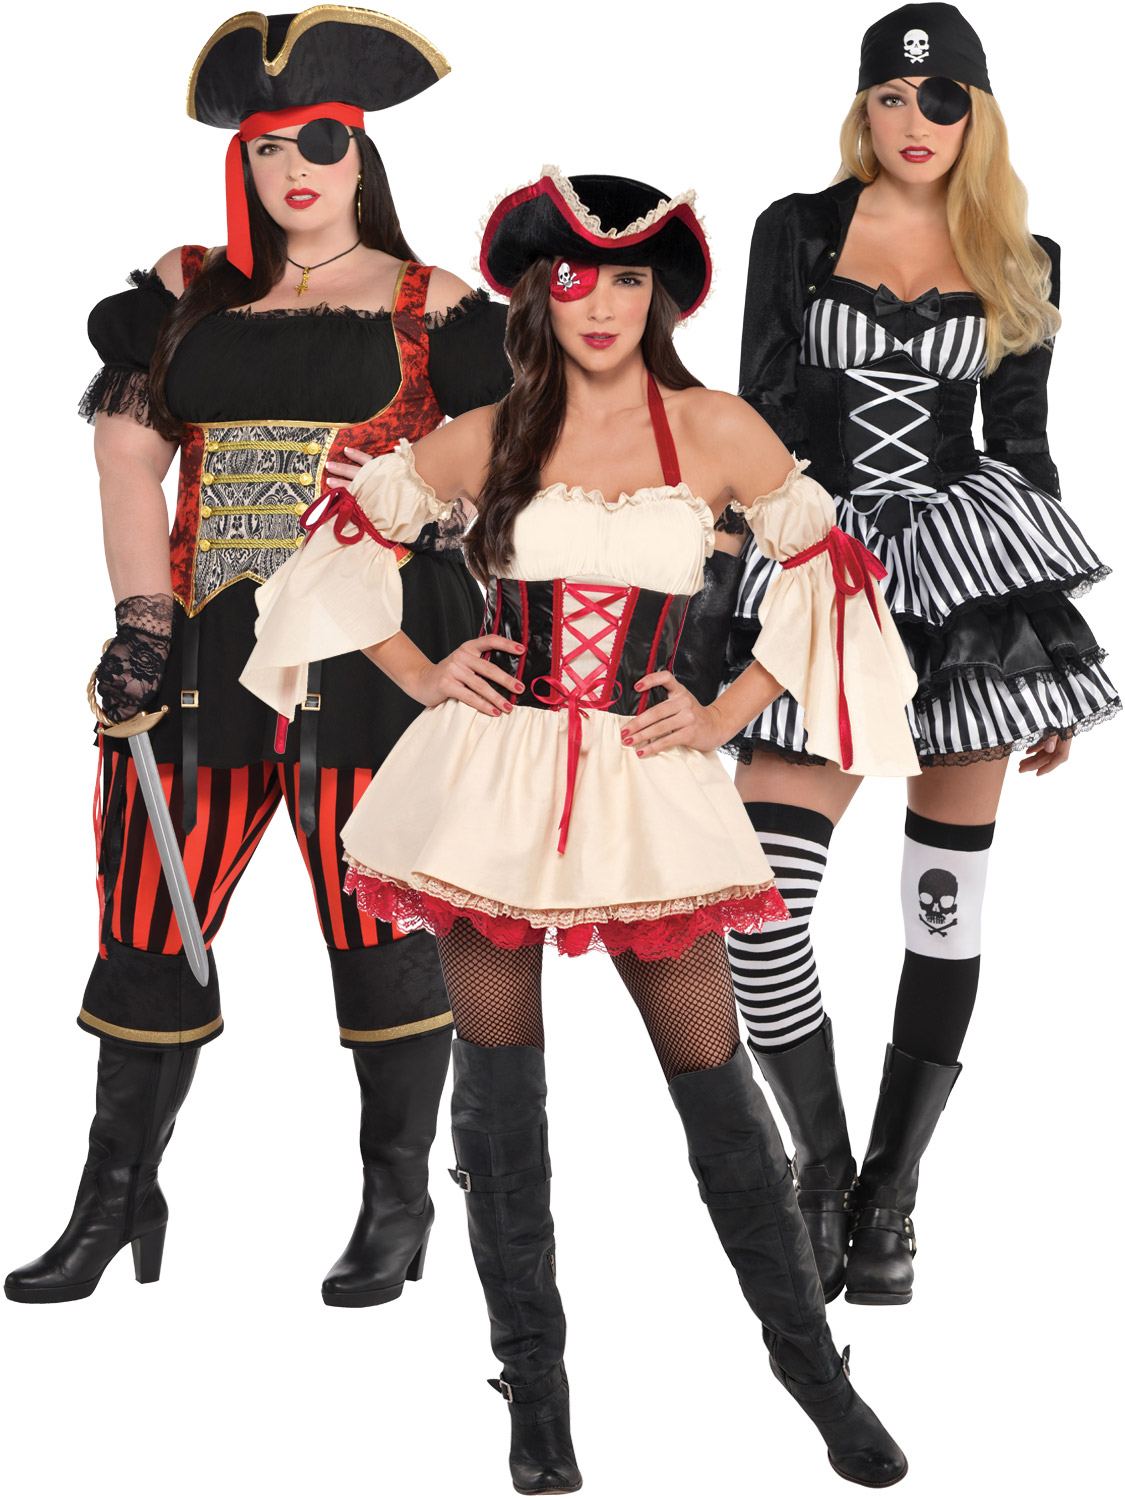 Ladies pirate costume adults captain buccaneer fancy dress halloween transform yourself into a pirate of the seven seas with these fantastic ladies pirate outfits ideal for a themed party solutioingenieria Image collections